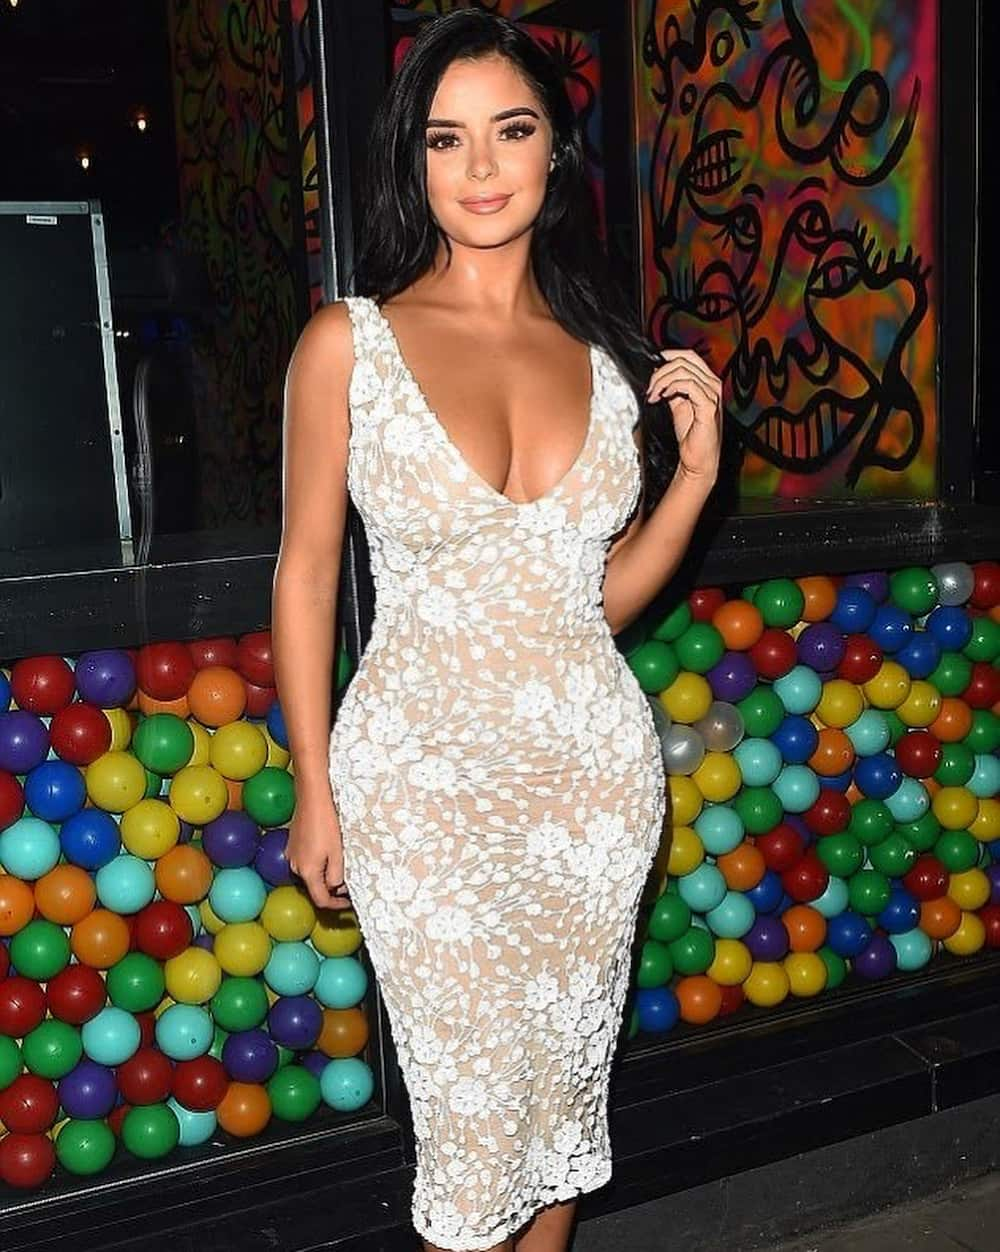 Demi Rose Mawby's height